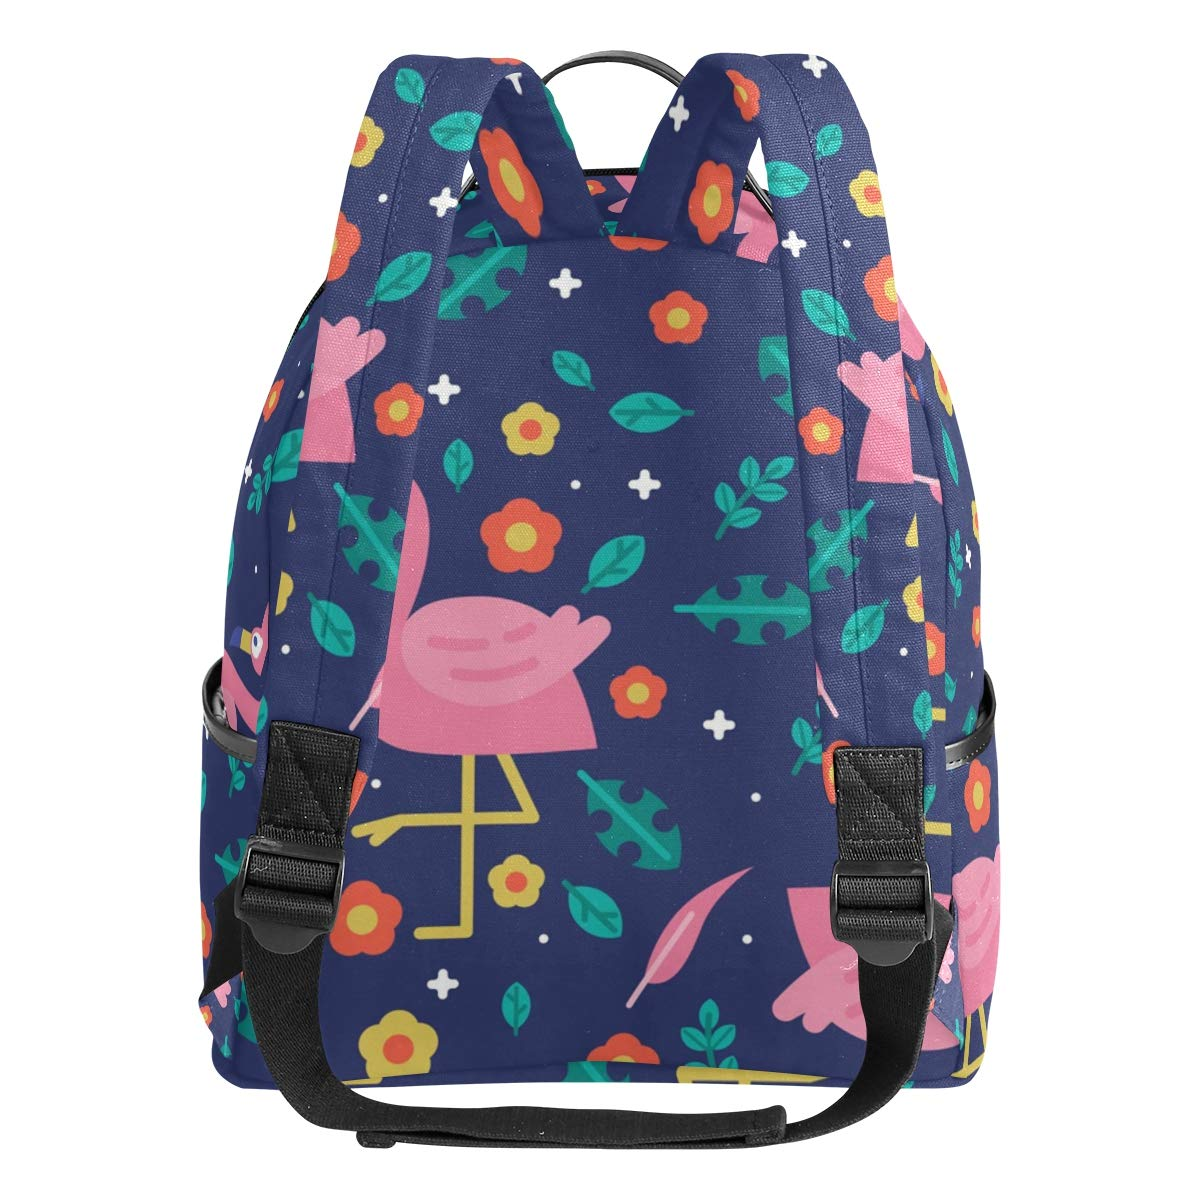 Flamingo Forest Leaves Flower School Backpack Canvas Rucksack Large  Capacity Satchel Casual Travel Daypack for Kids Girls Boys Children  Students 7179899eac4cb